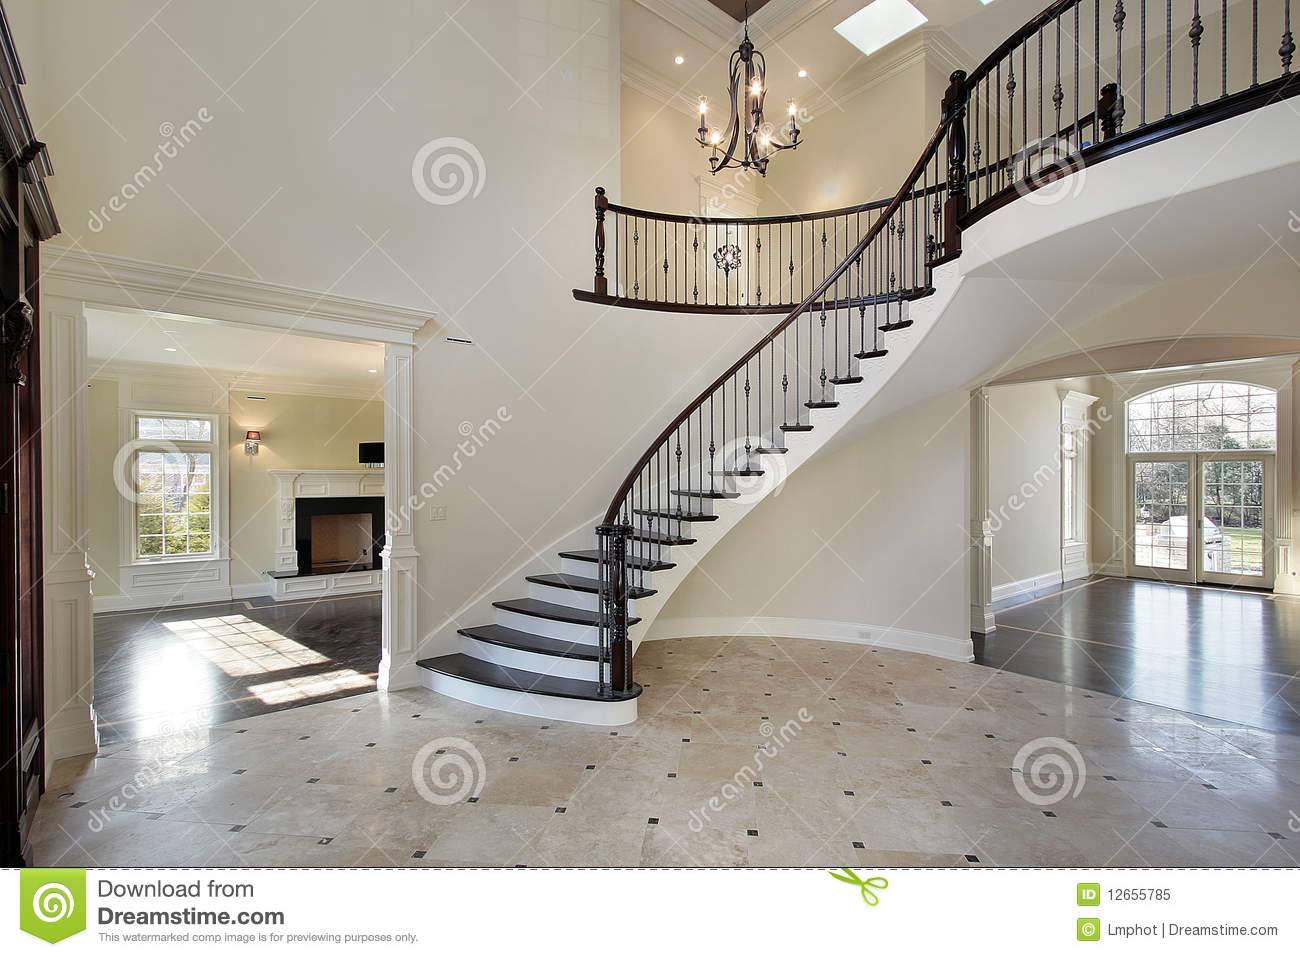 Foyer With Circular Staircase Royalty Free Stock Photo - Image ...